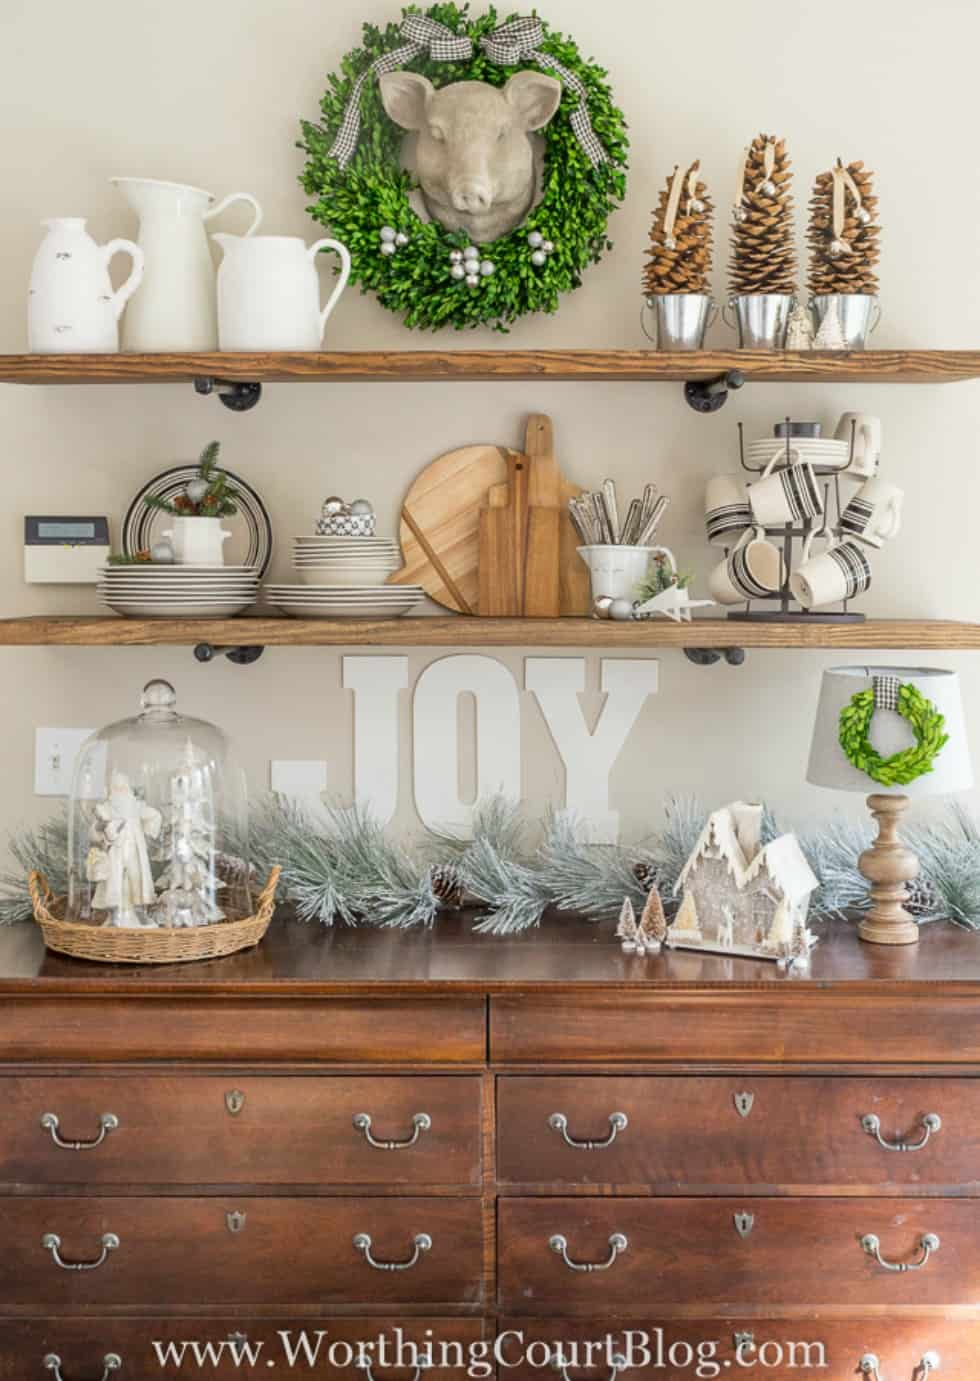 Rustic Industrial Farmhouse Shelves Decorated For Christmas